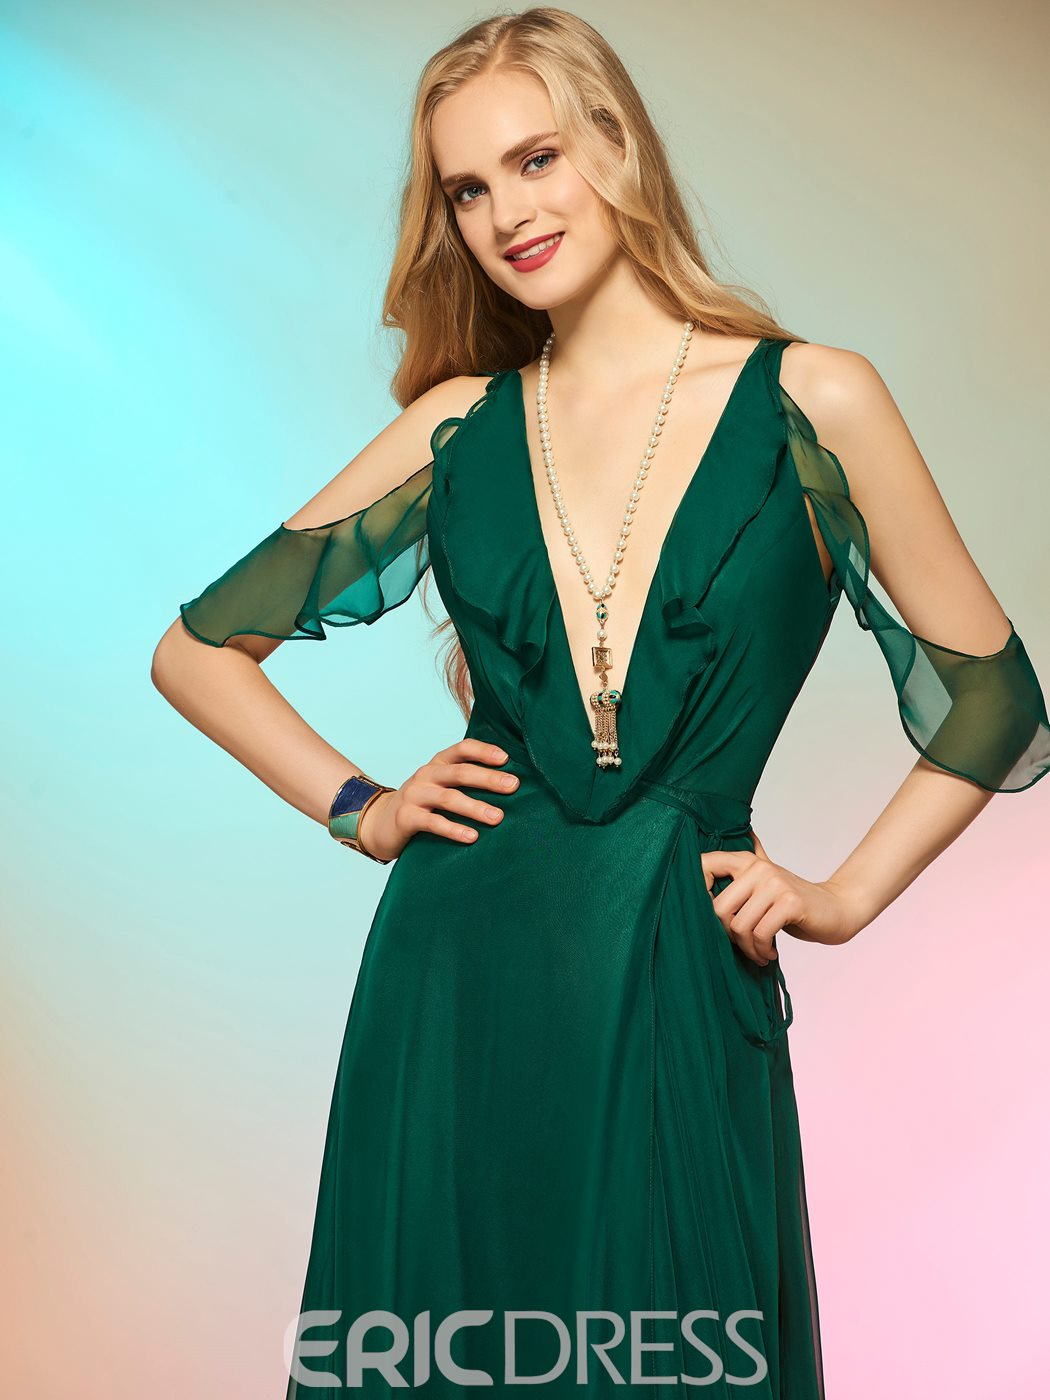 Ericdress Sexy V Neck Side Slit Deep Back A Line Long Evening Dress